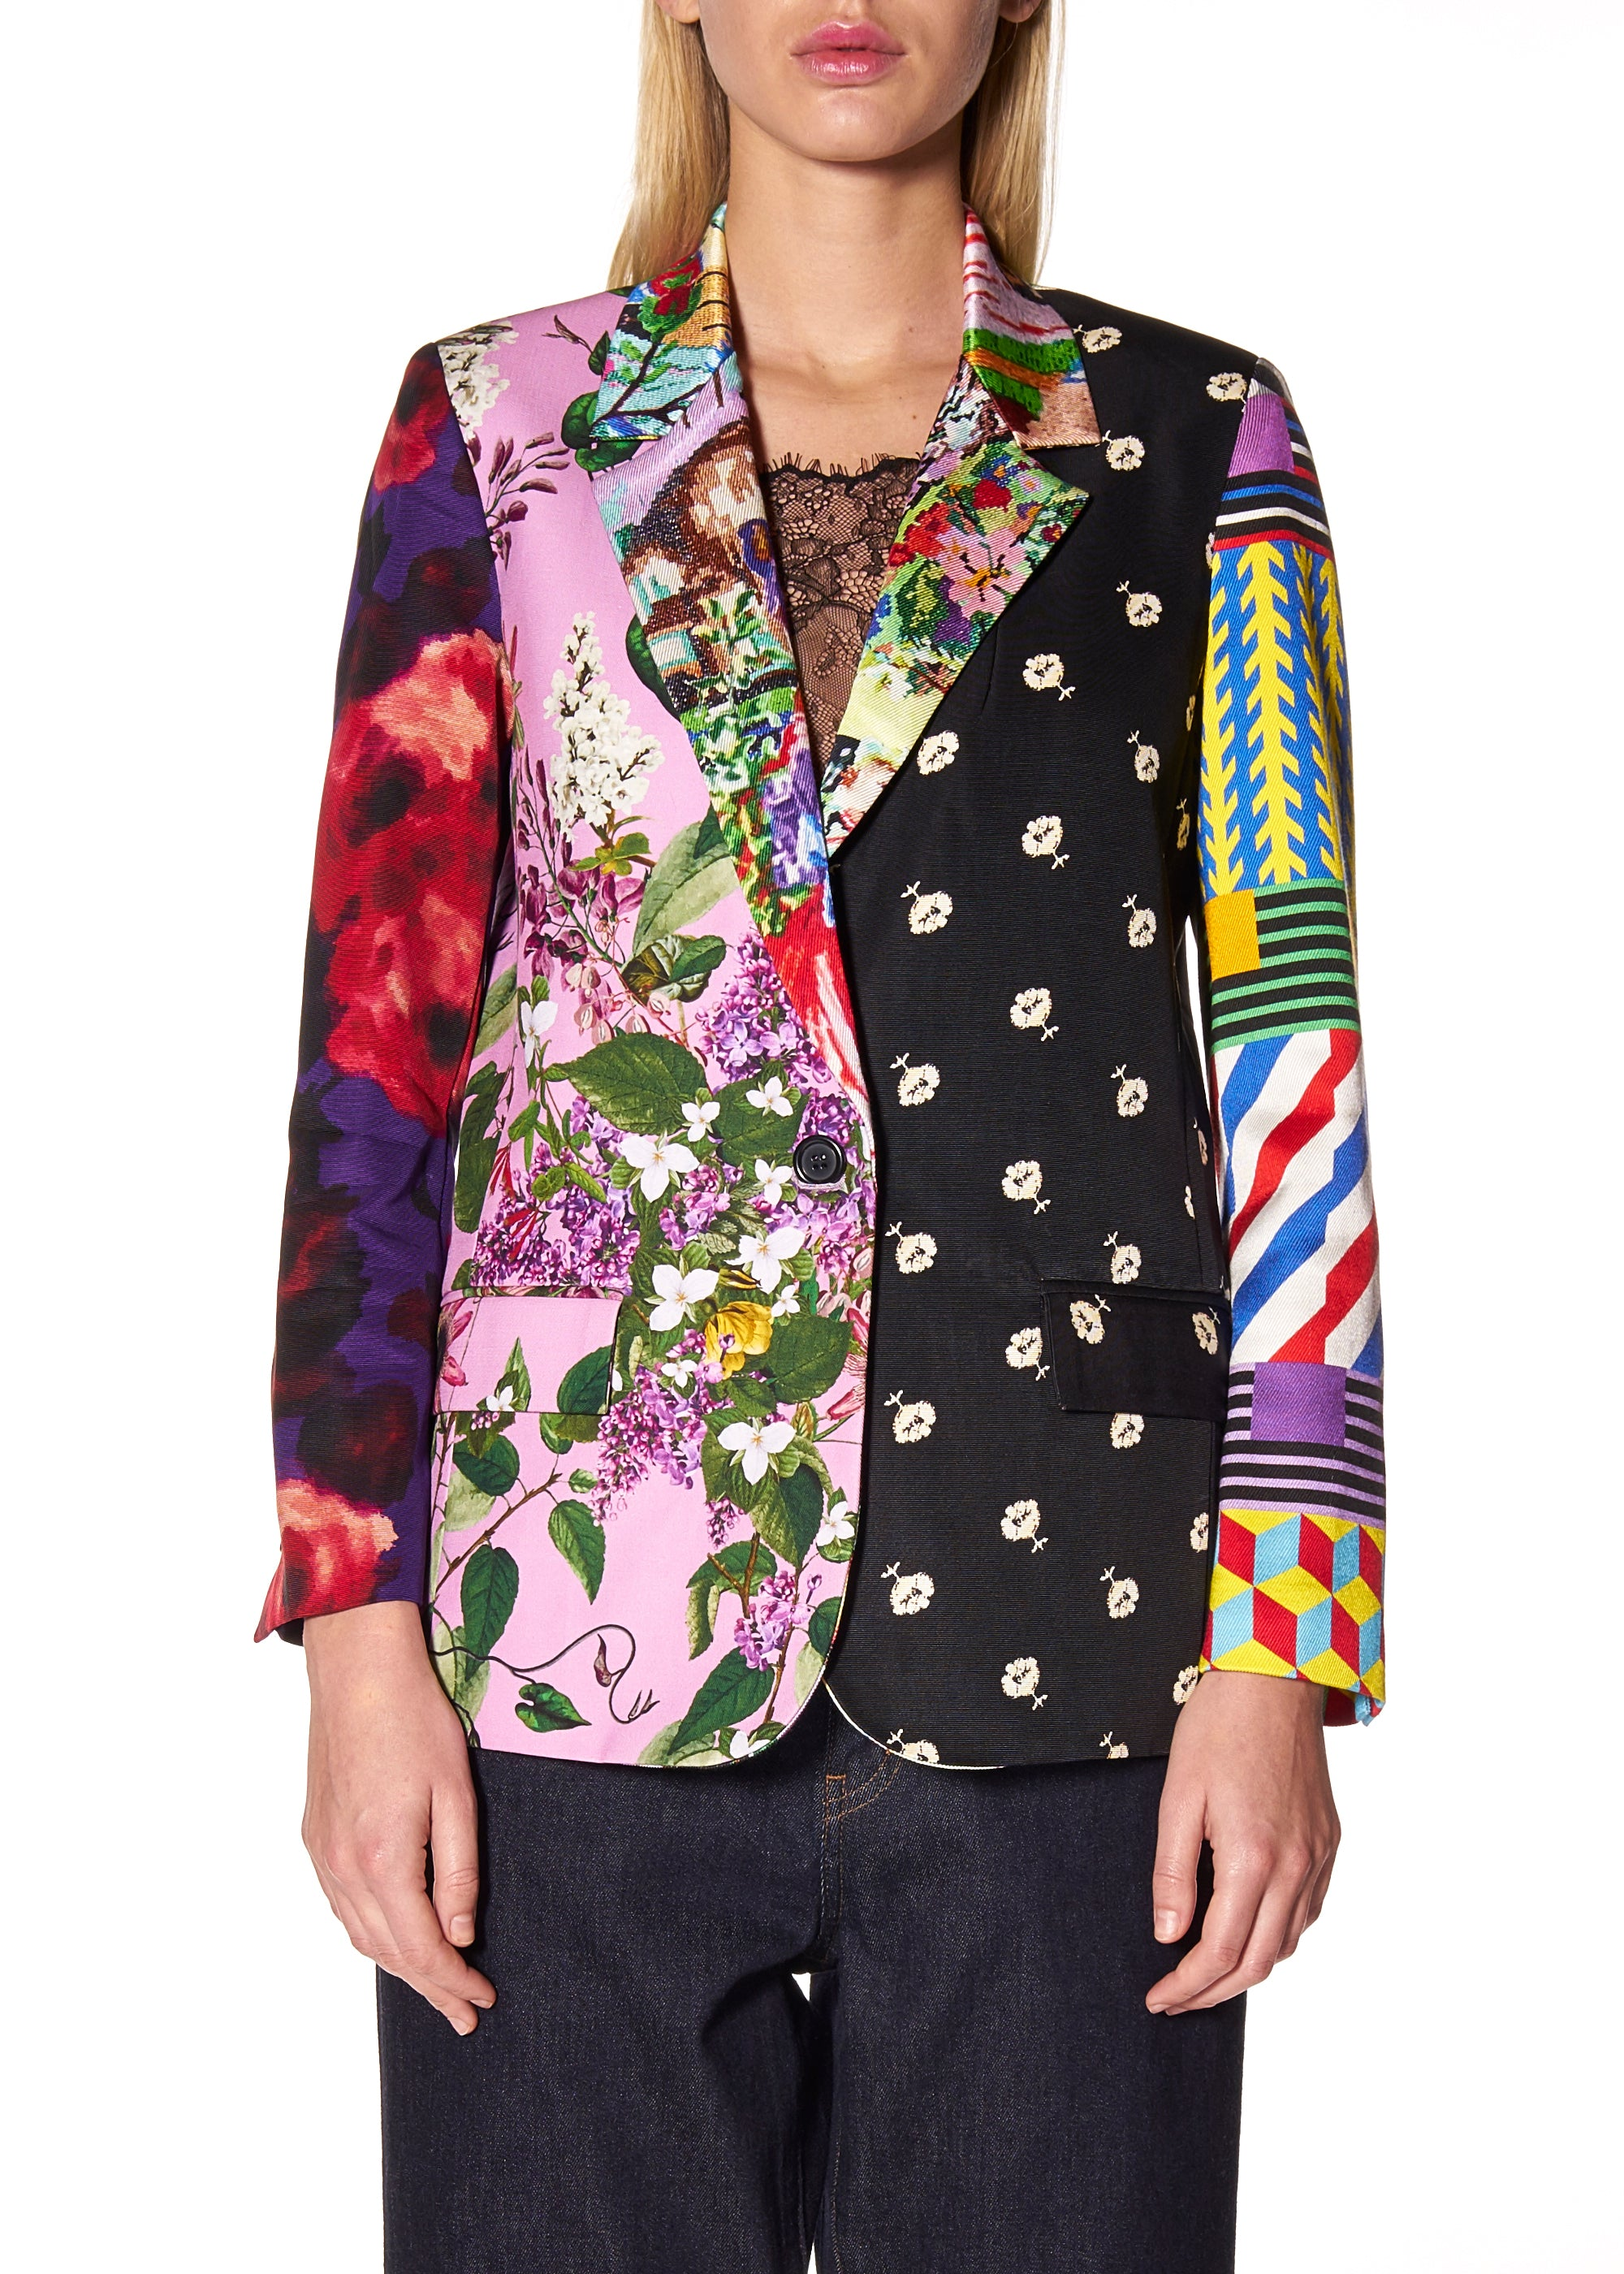 """EVERYTHING BEAUTIFUL"" LONG BLAZER - Women's Jackets & Coats - Libertine"